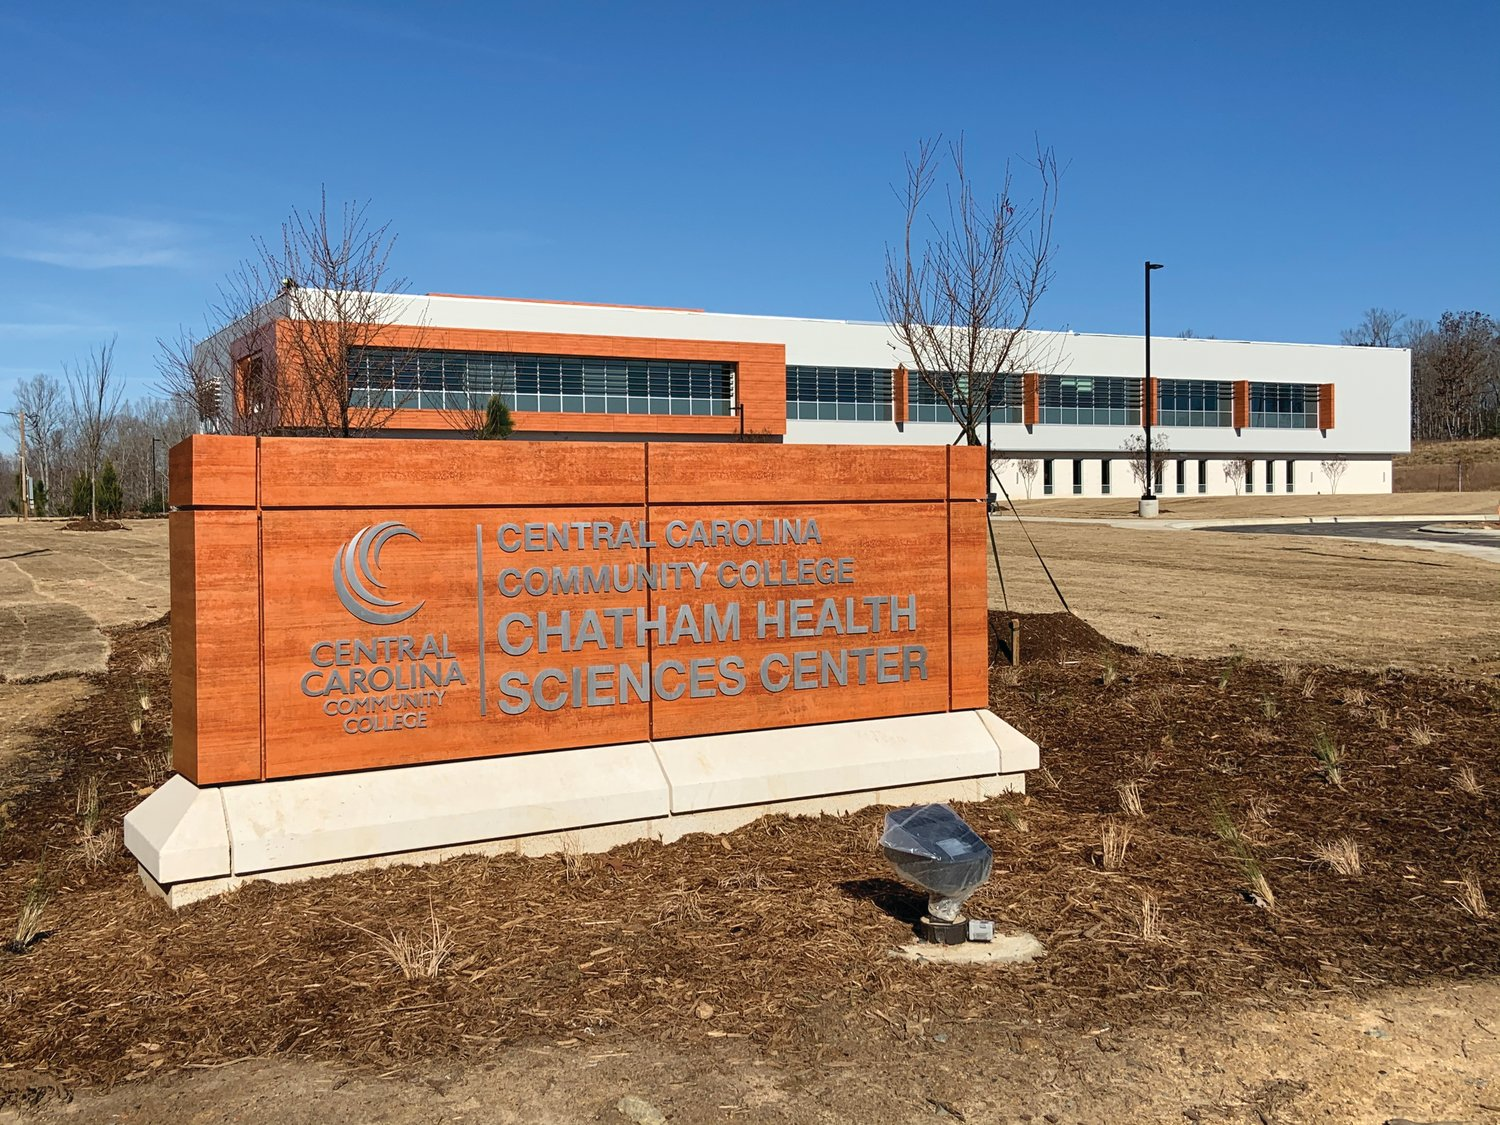 The new Chatham Health Sciences Center of Central Carolina Community College, which sits by Briar Chapel off of U.S. Hwy. 15-501 in Chapel Hill, will open for students on Jan. 13.